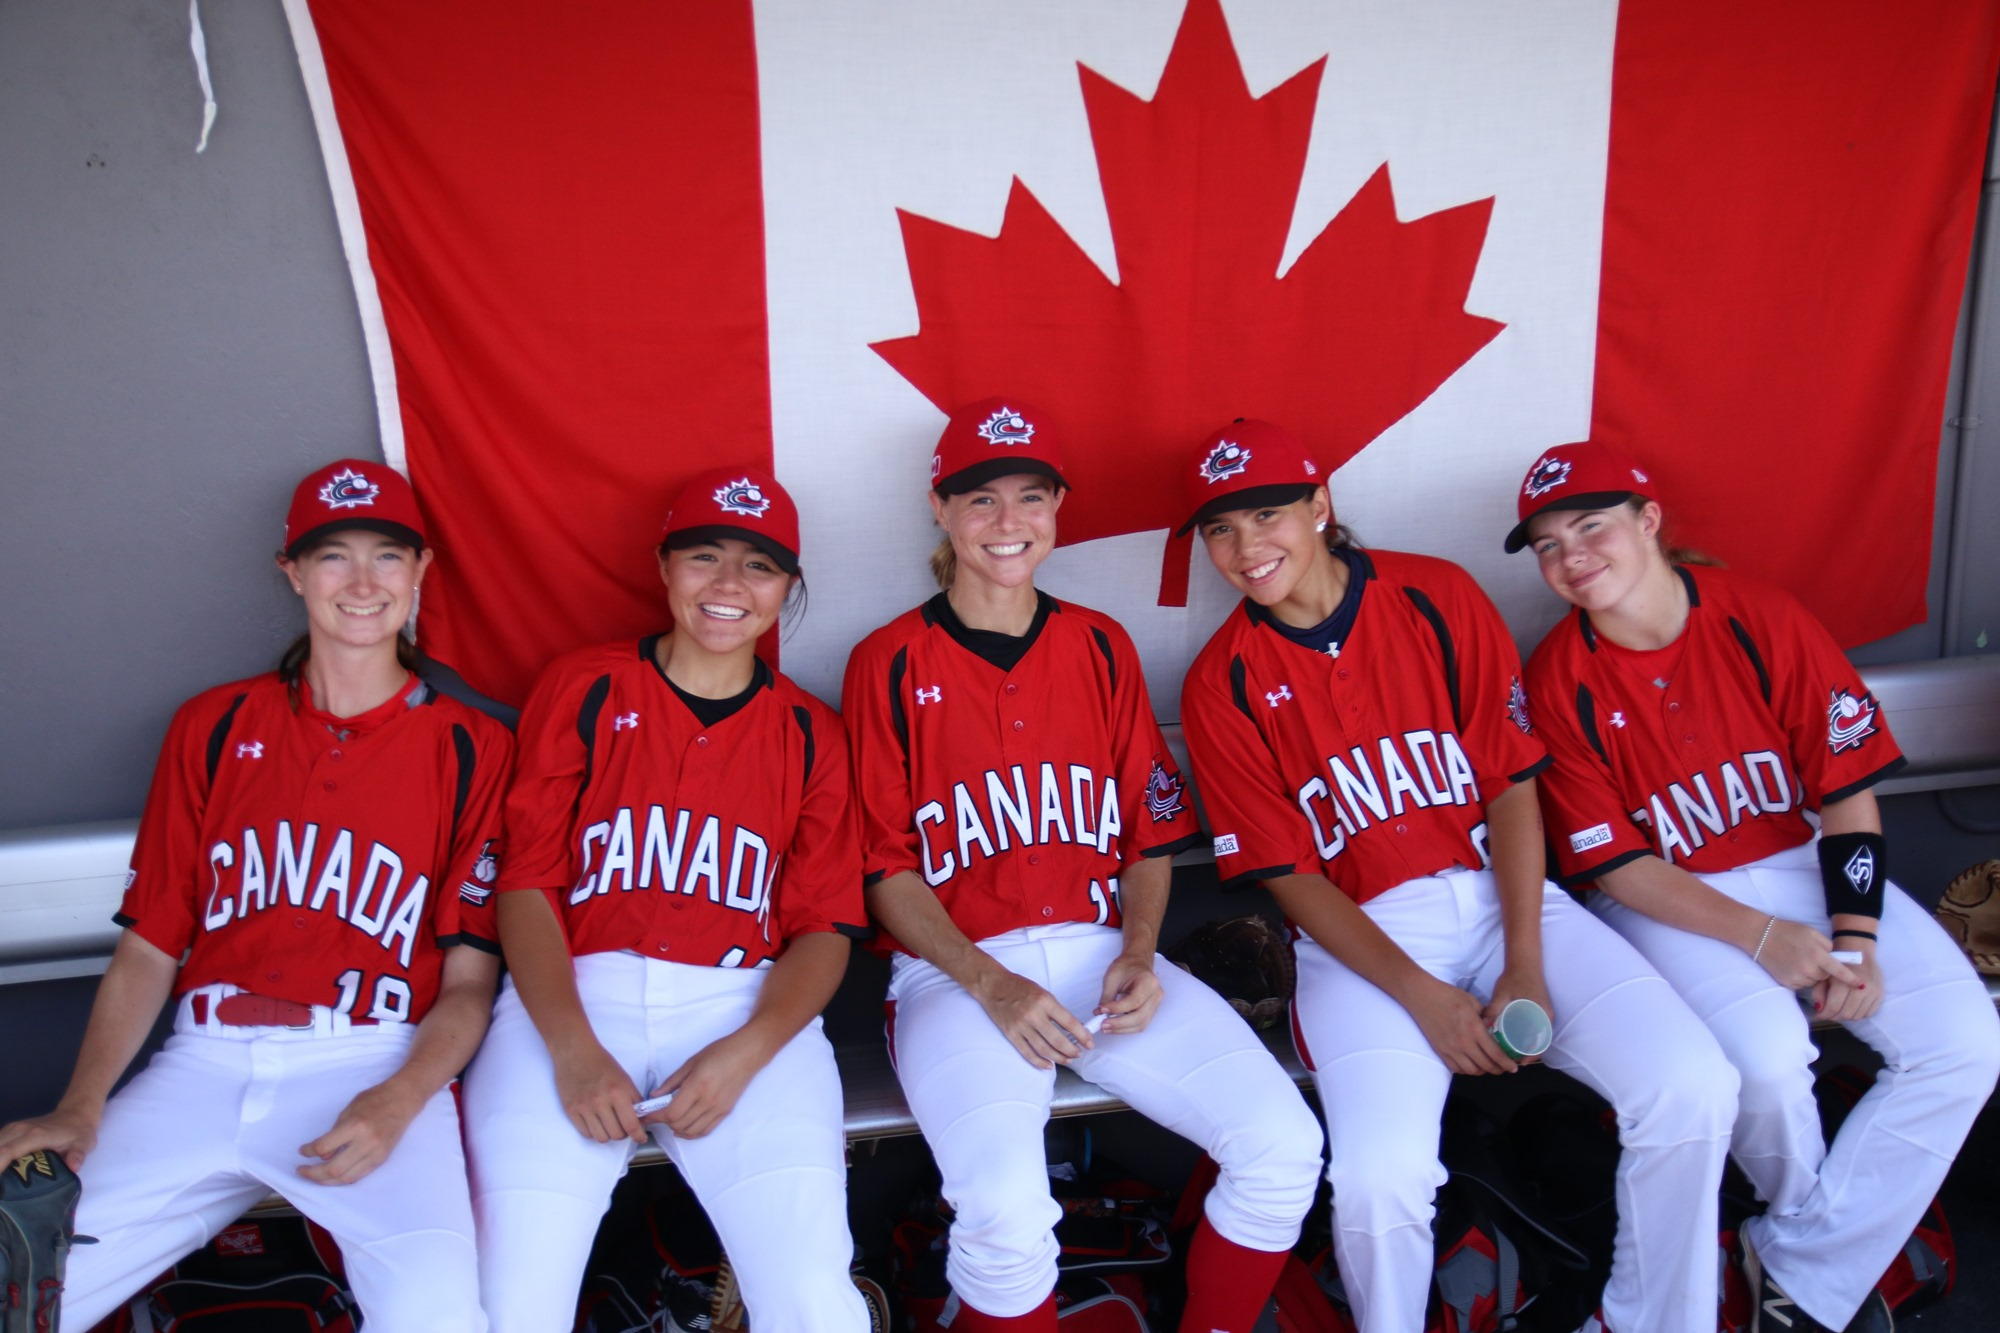 Canada's dugout before the game